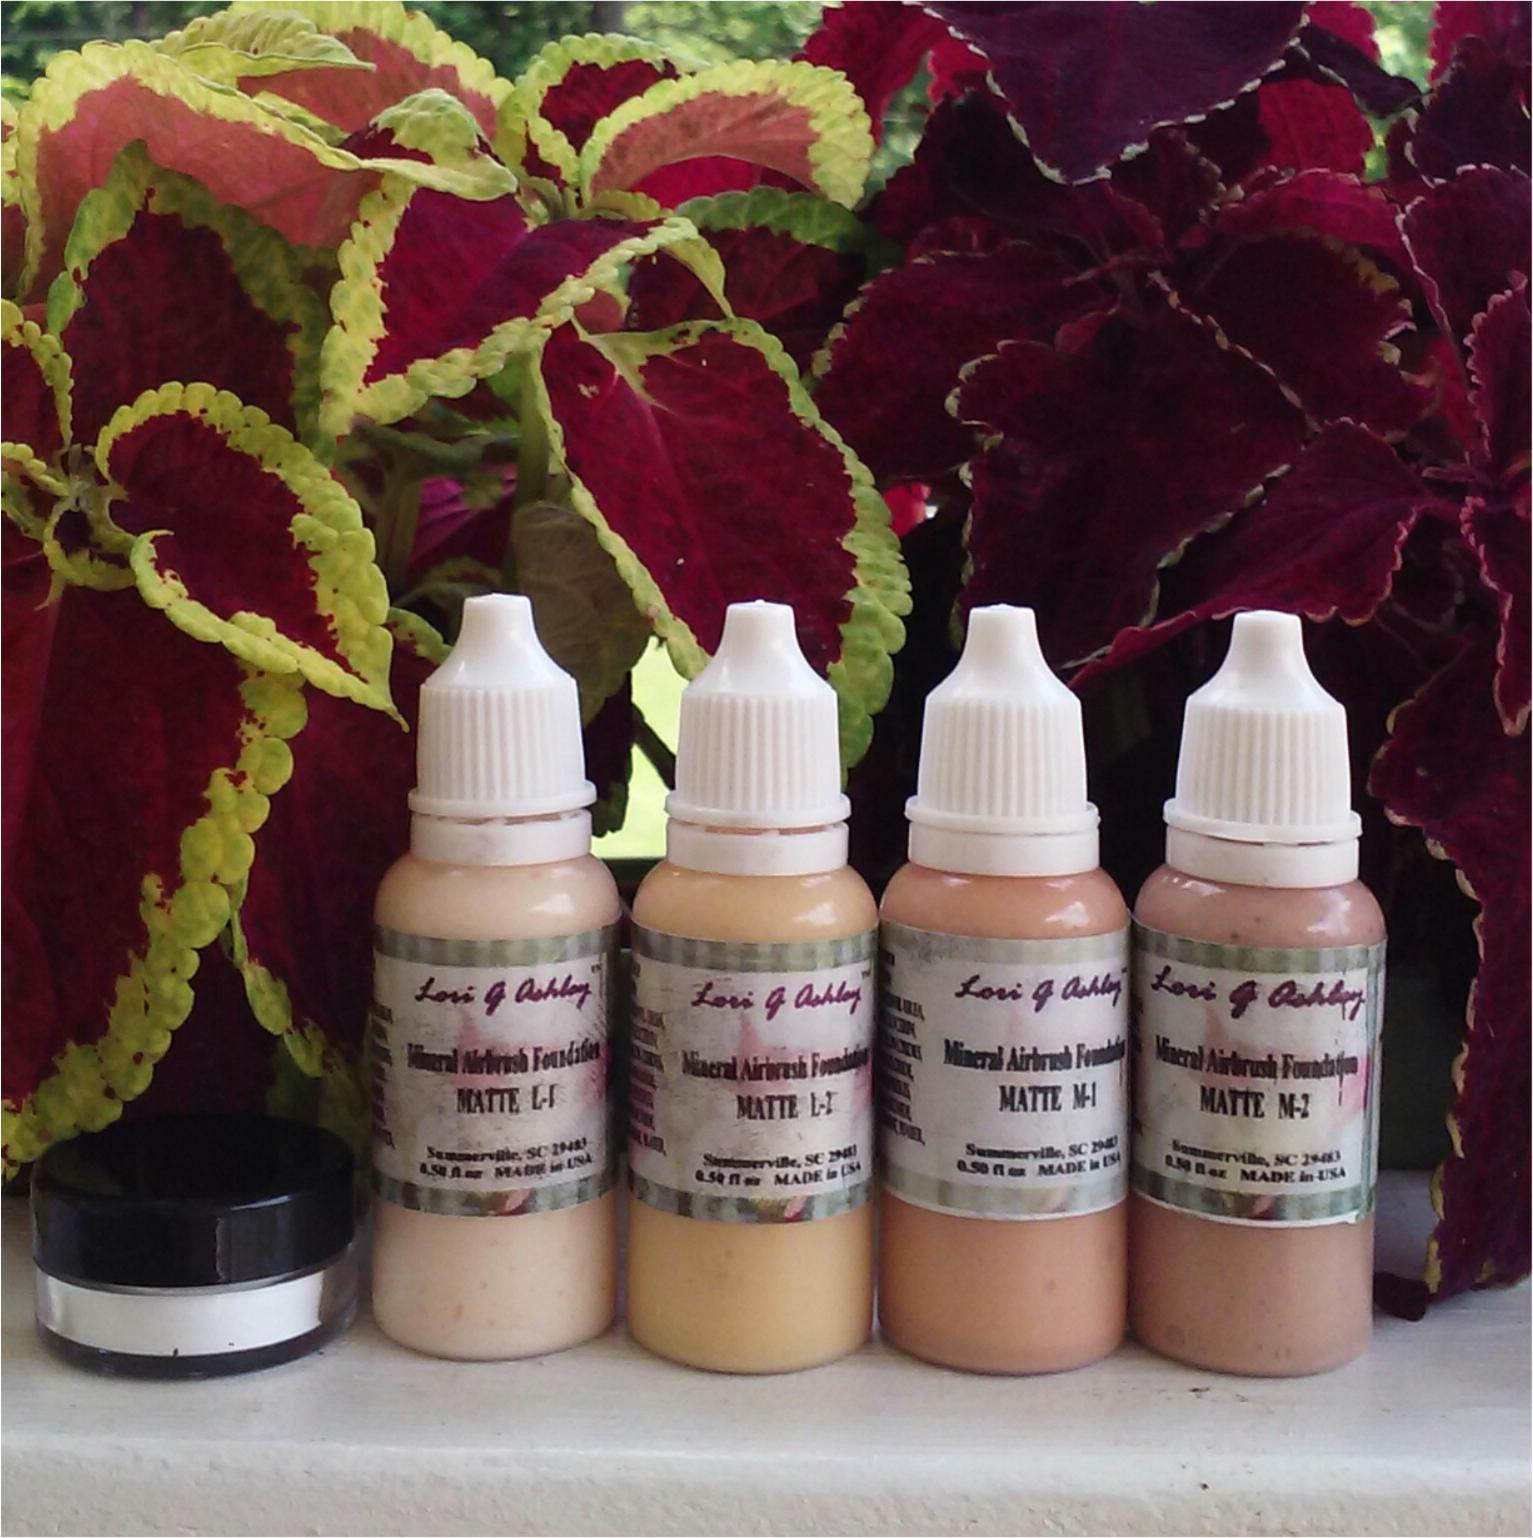 AIRBRUSH MAKEUP Kit w/free Finishing Powder choose color Lori G Ashley® - $30.00